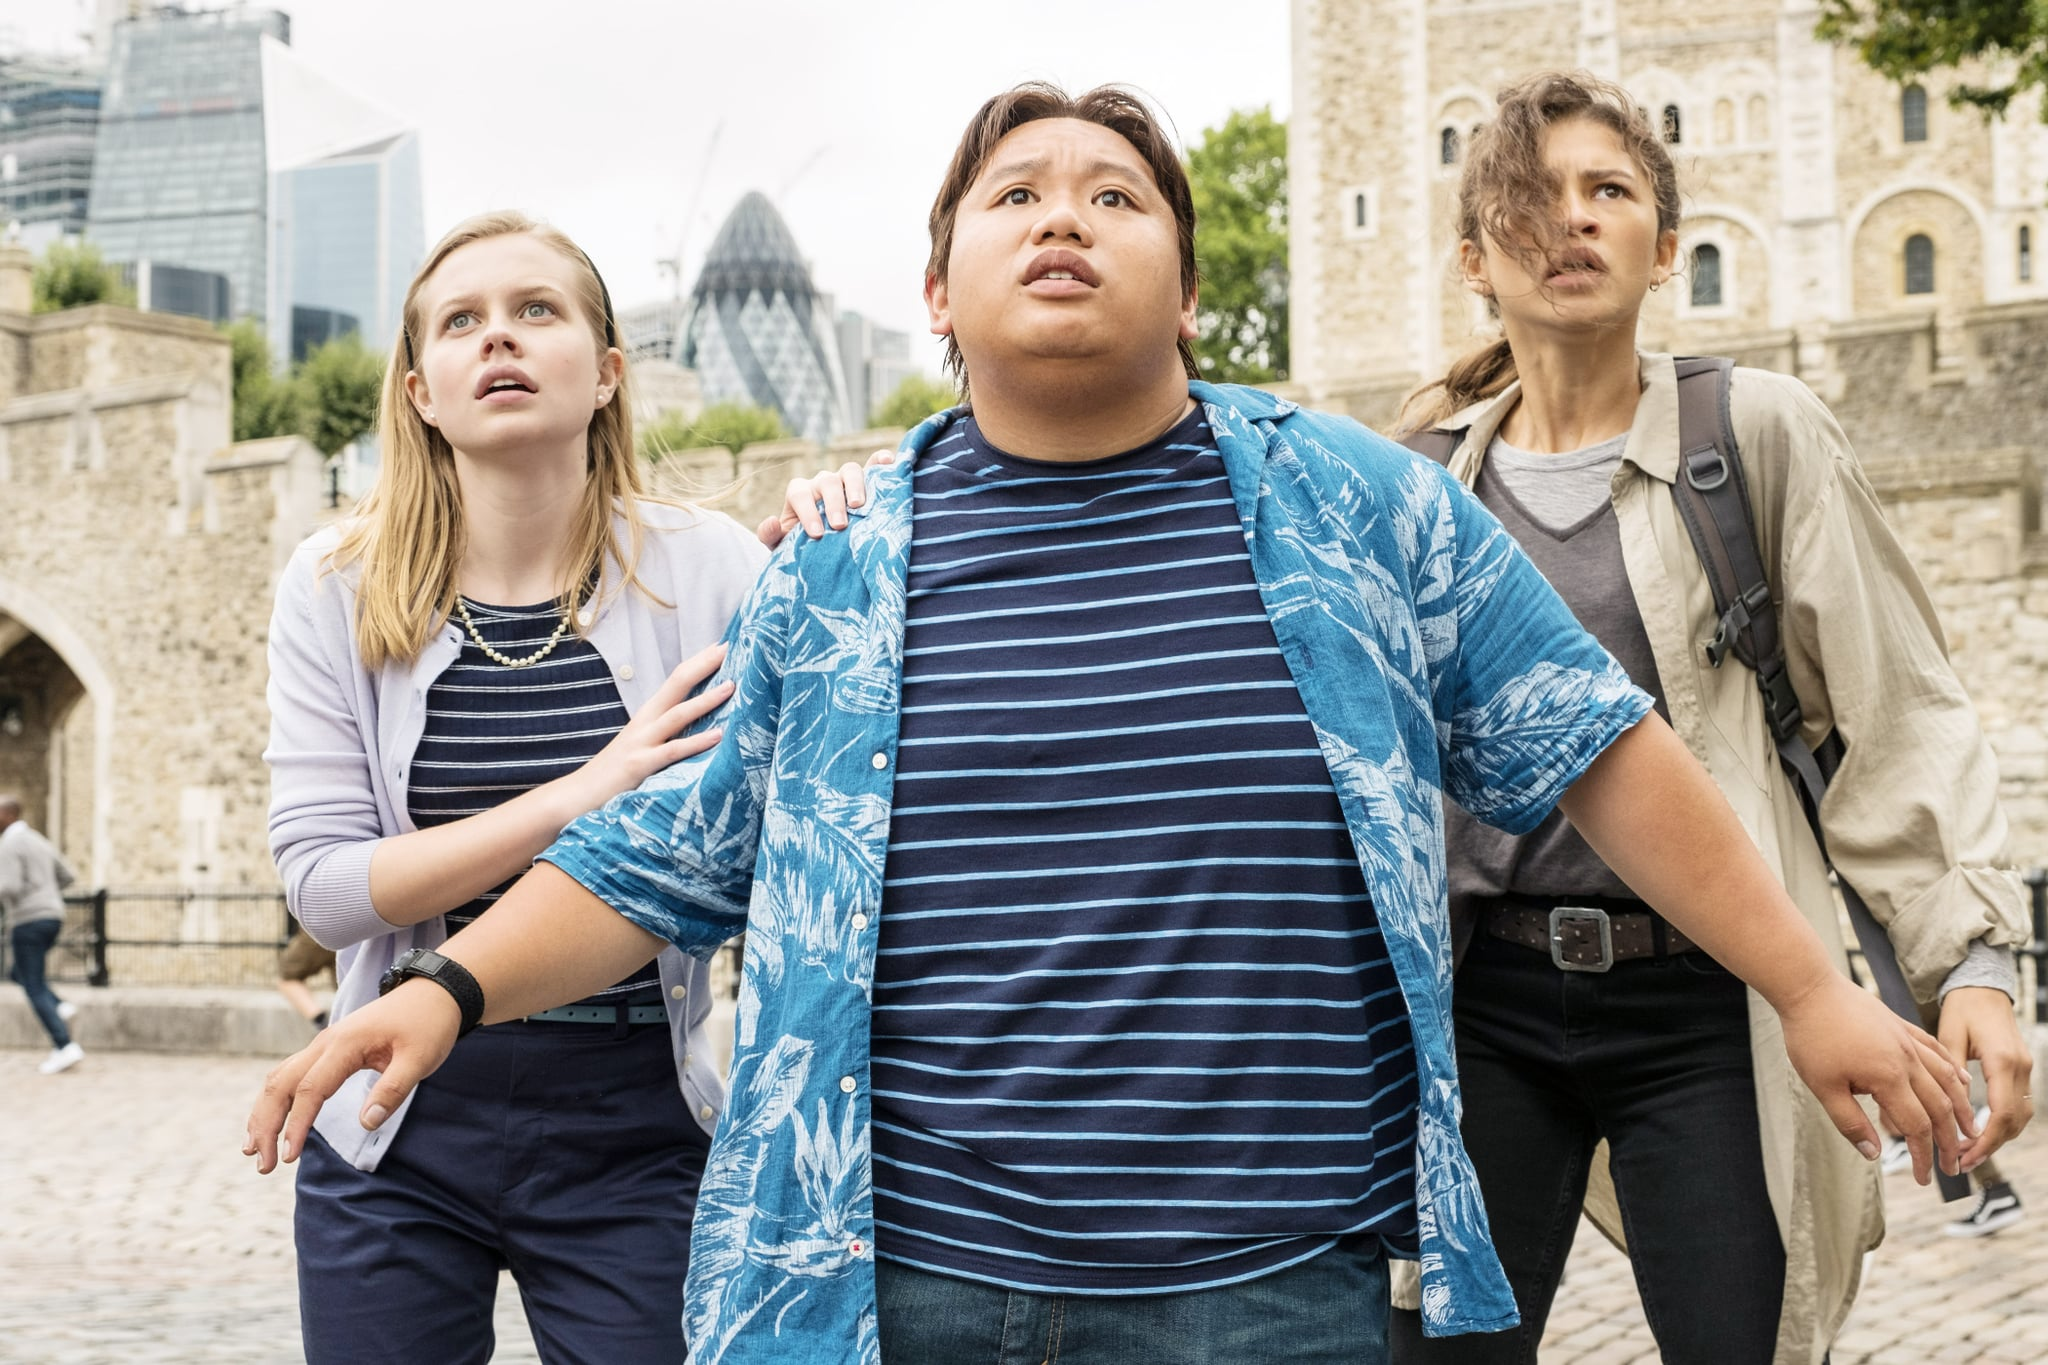 SPIDER-MAN: FAR FROM HOME, from left: Angourie Rice, Jacob Batalon, Zendaya, 2019. ph: Jay-Maidment /  Columbia /  Marvel Studios/ Courtesy Everett Collection